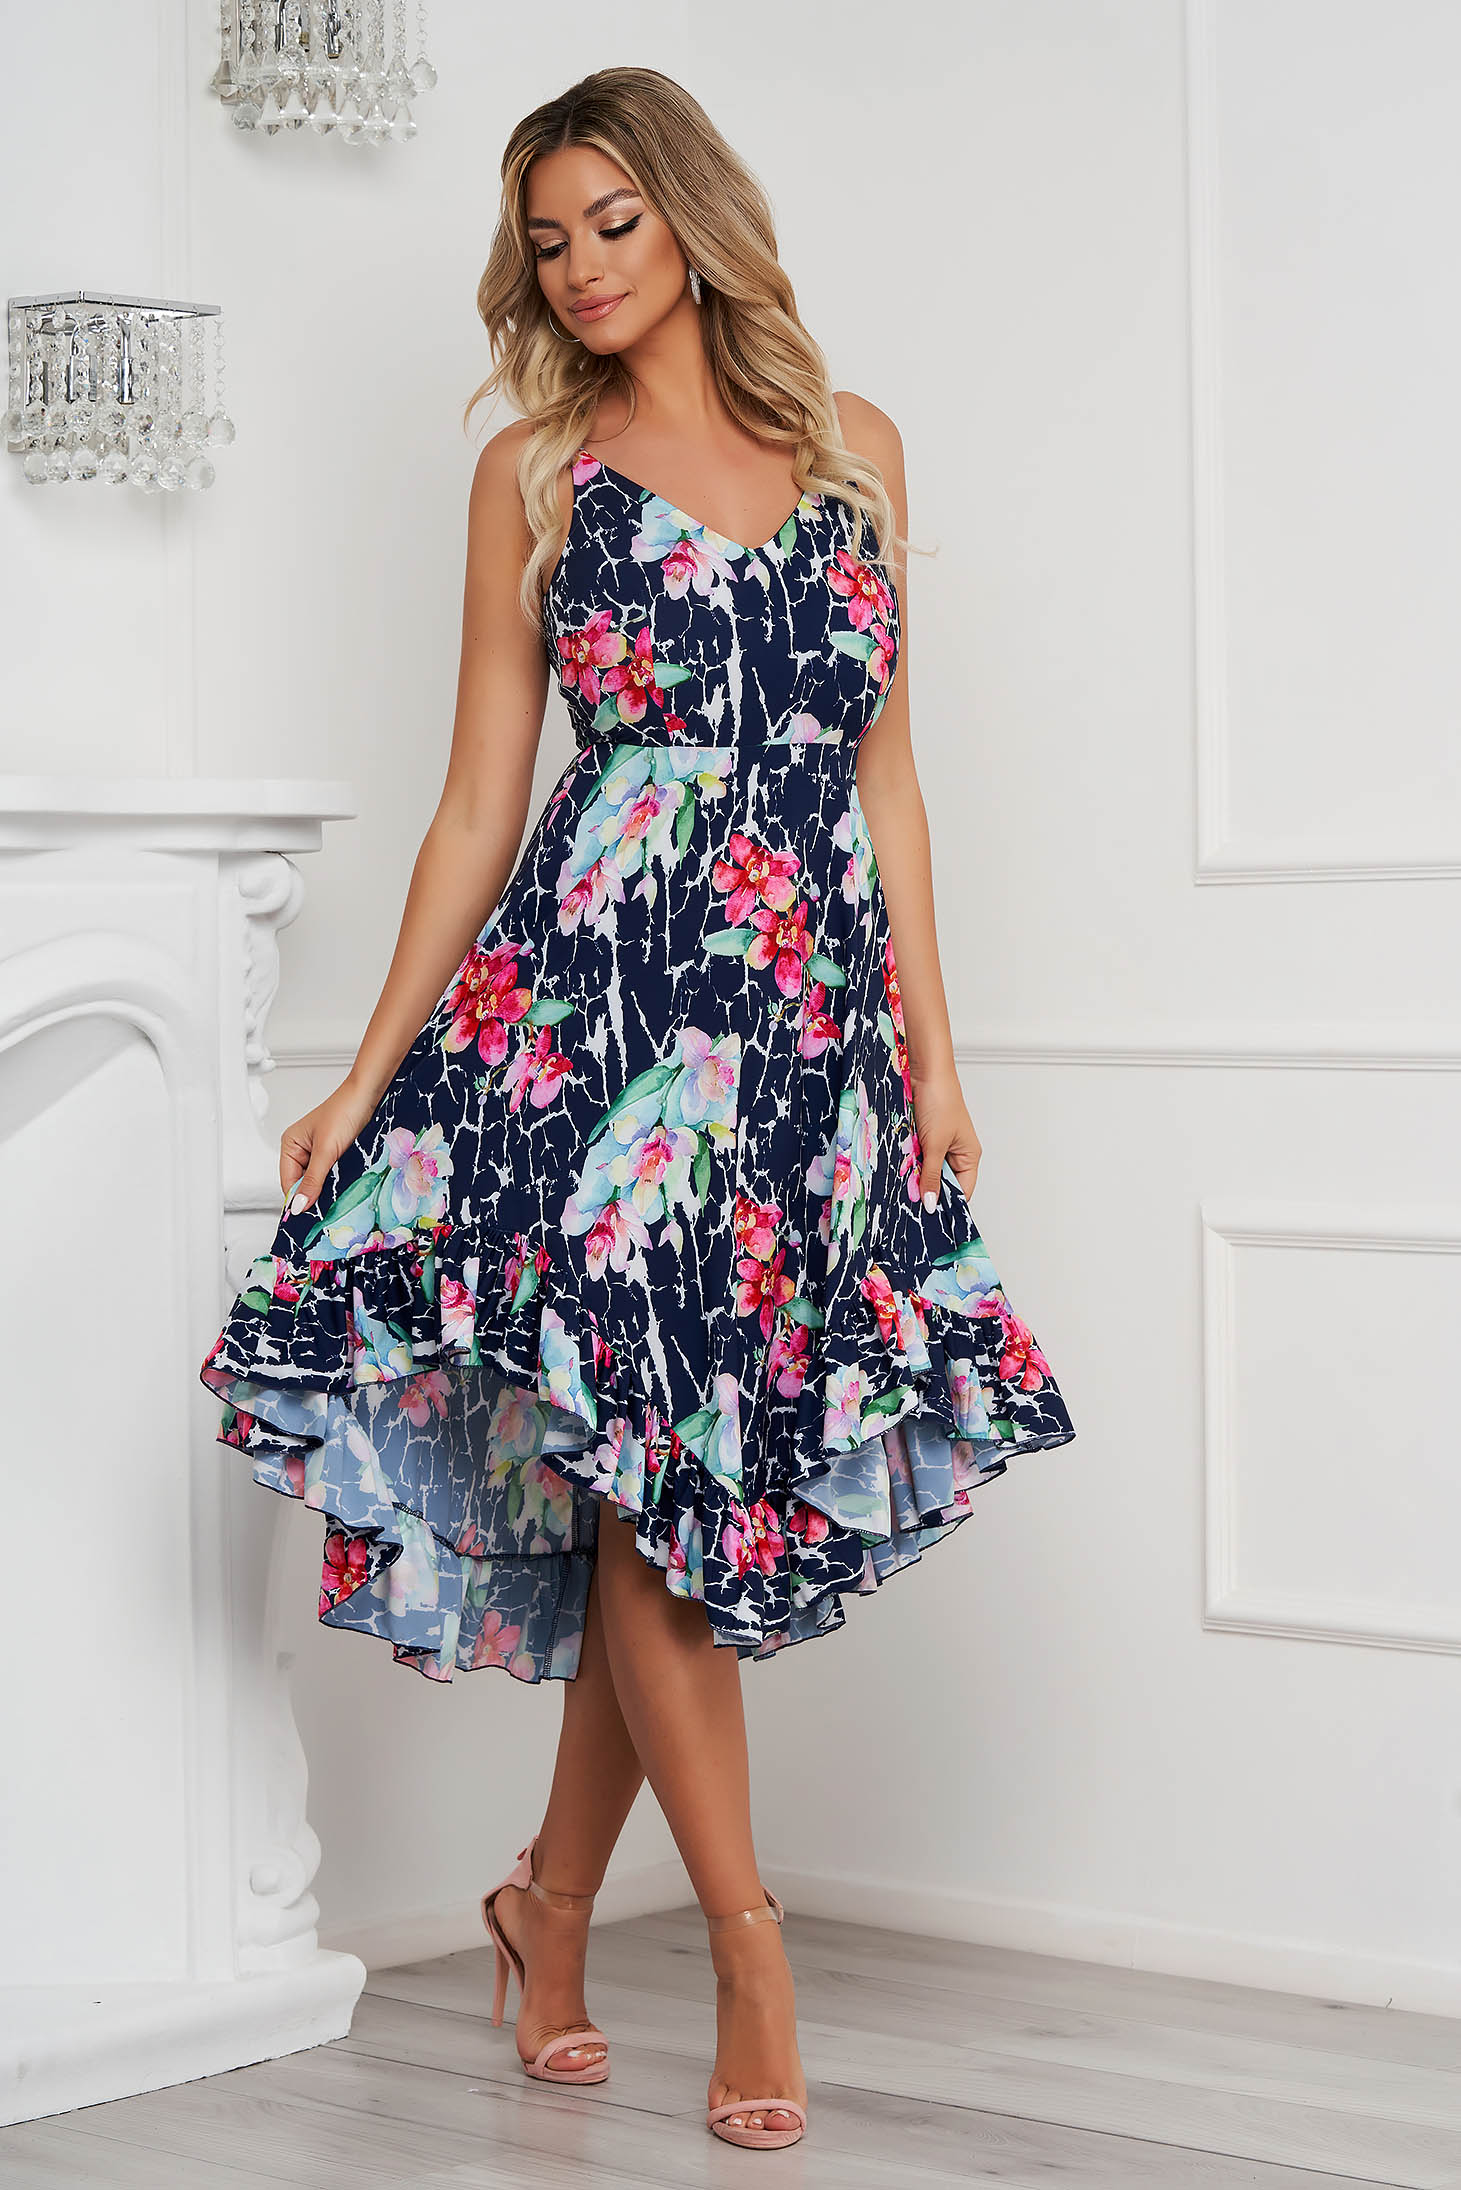 StarShinerS dress cloche midi thin fabric asymmetrical with ruffles at the buttom of the dress with straps